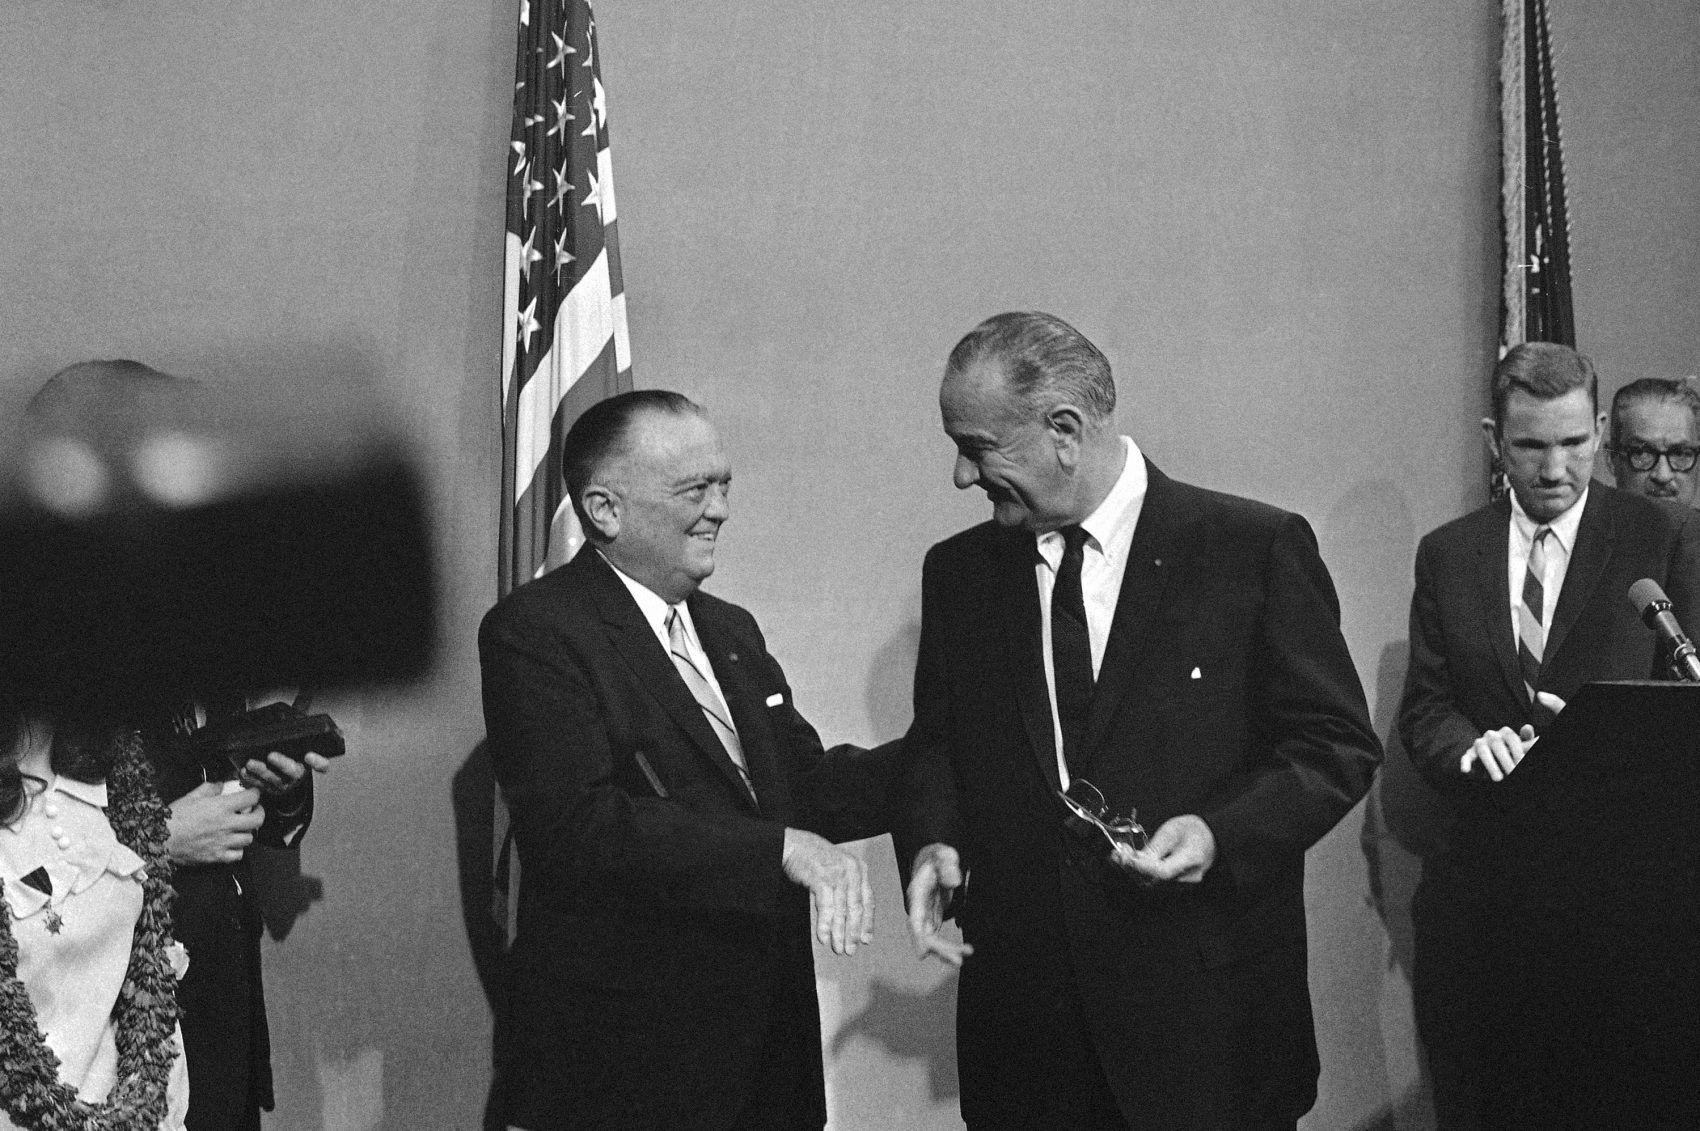 President Lyndon Johnson greets  J. Edgar Hoover, FBI director (left) at the White House in Washington on June 21, 1967. (Henry Burroughs/AP)